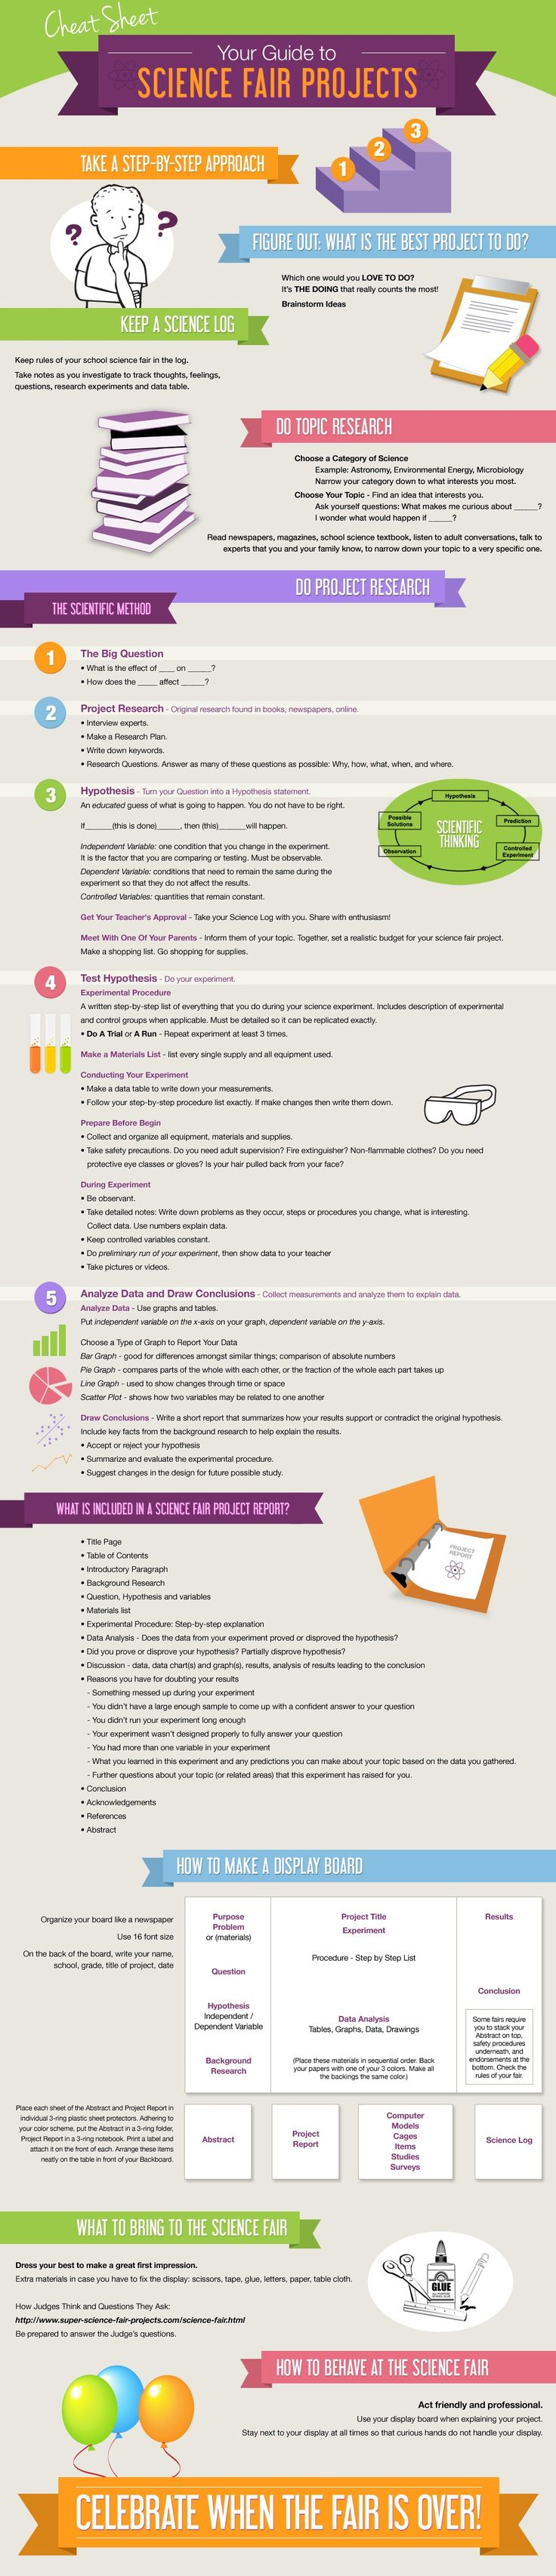 Step-by-step science fair project infographic - see the whole picture of the scientific method.